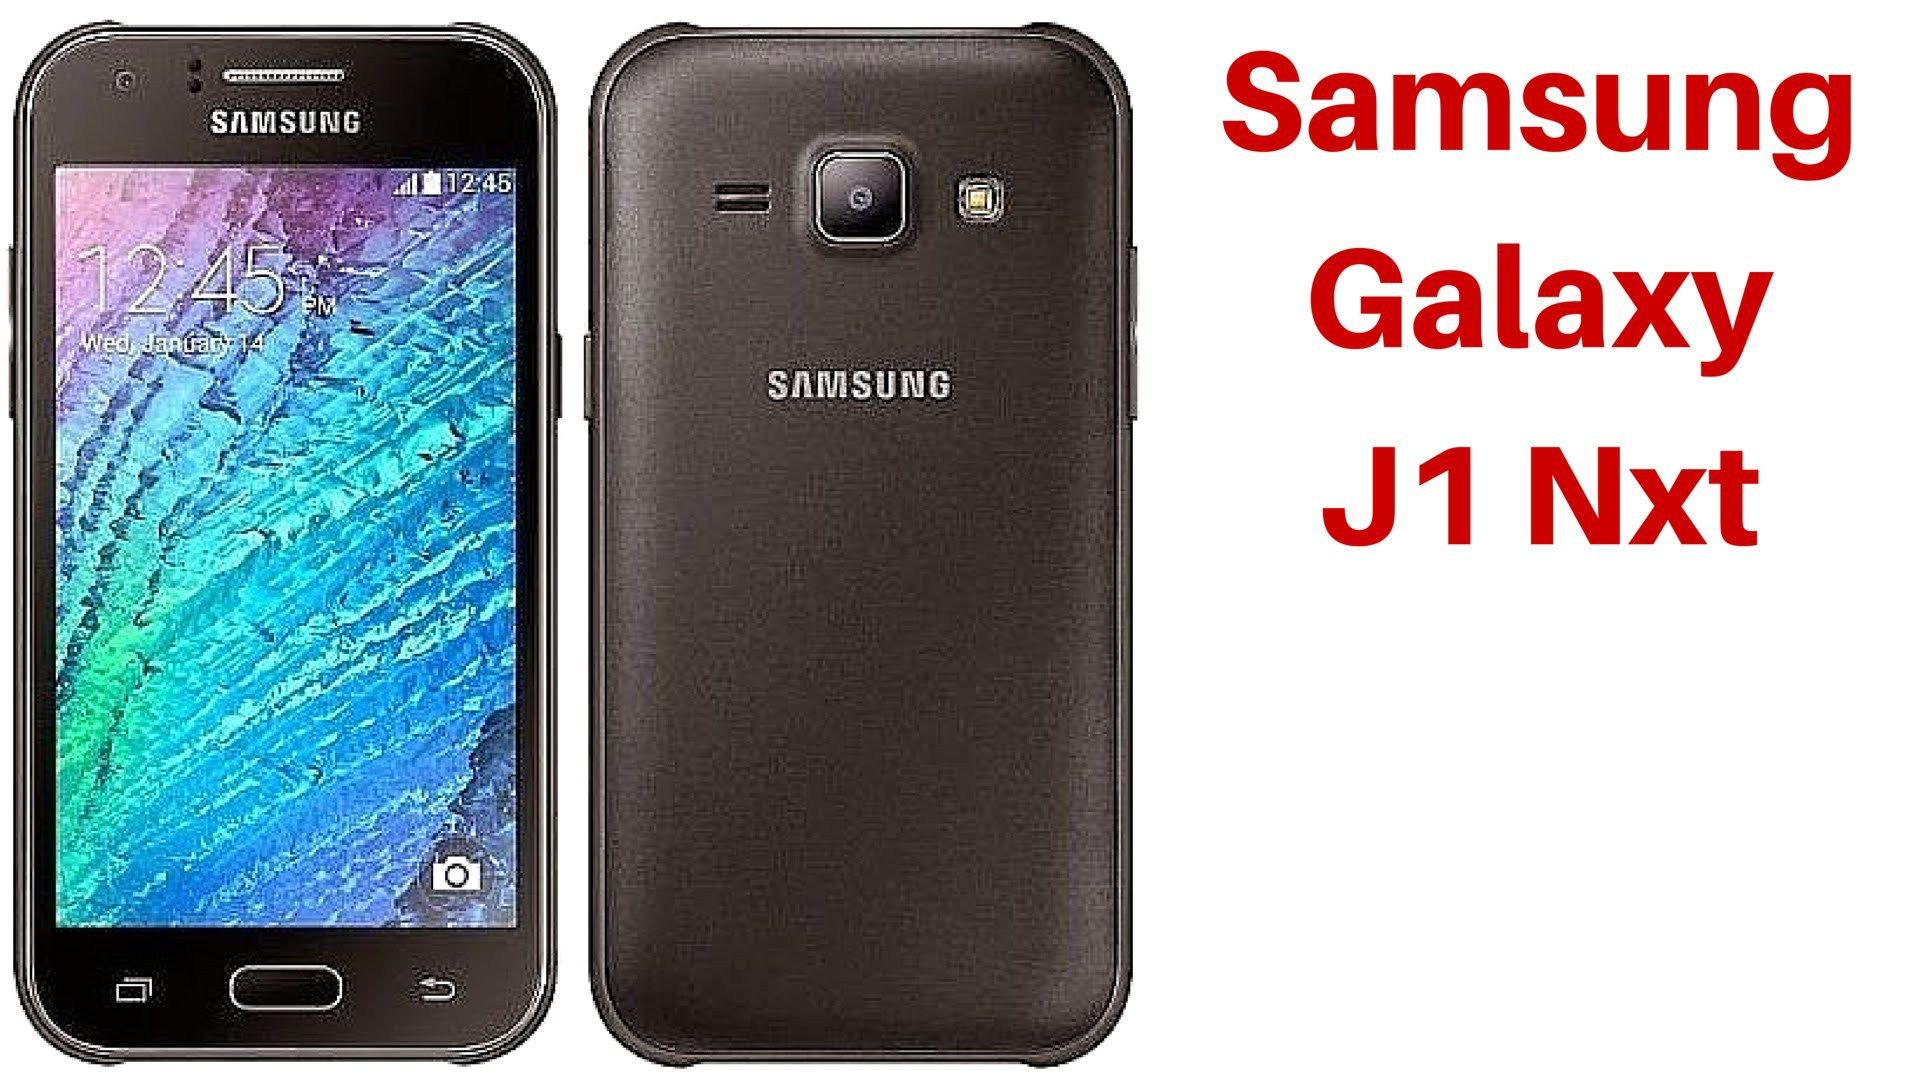 How to Enable Safe Mode on Samsung Galaxy J1 Nxt As you know Samsung Galaxy